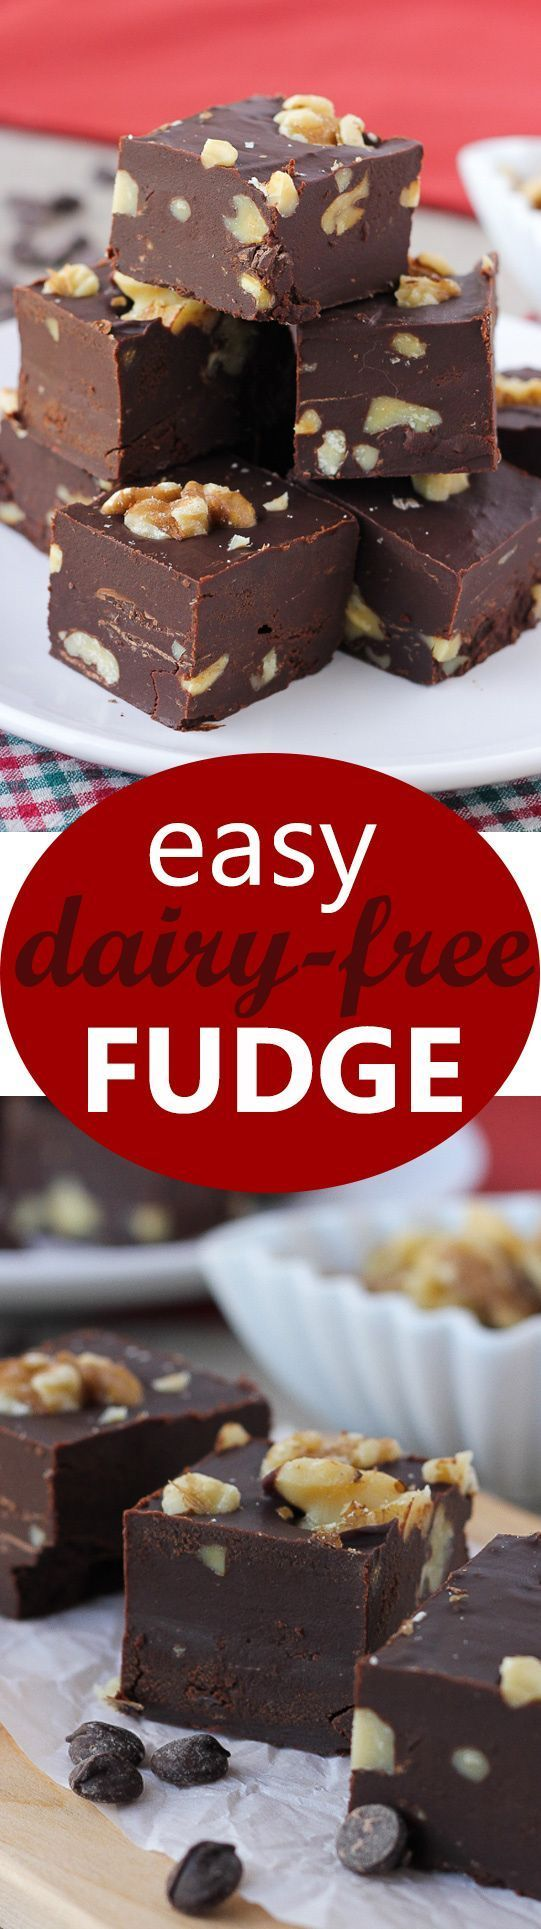 Sugar free fudge recipes for christmas